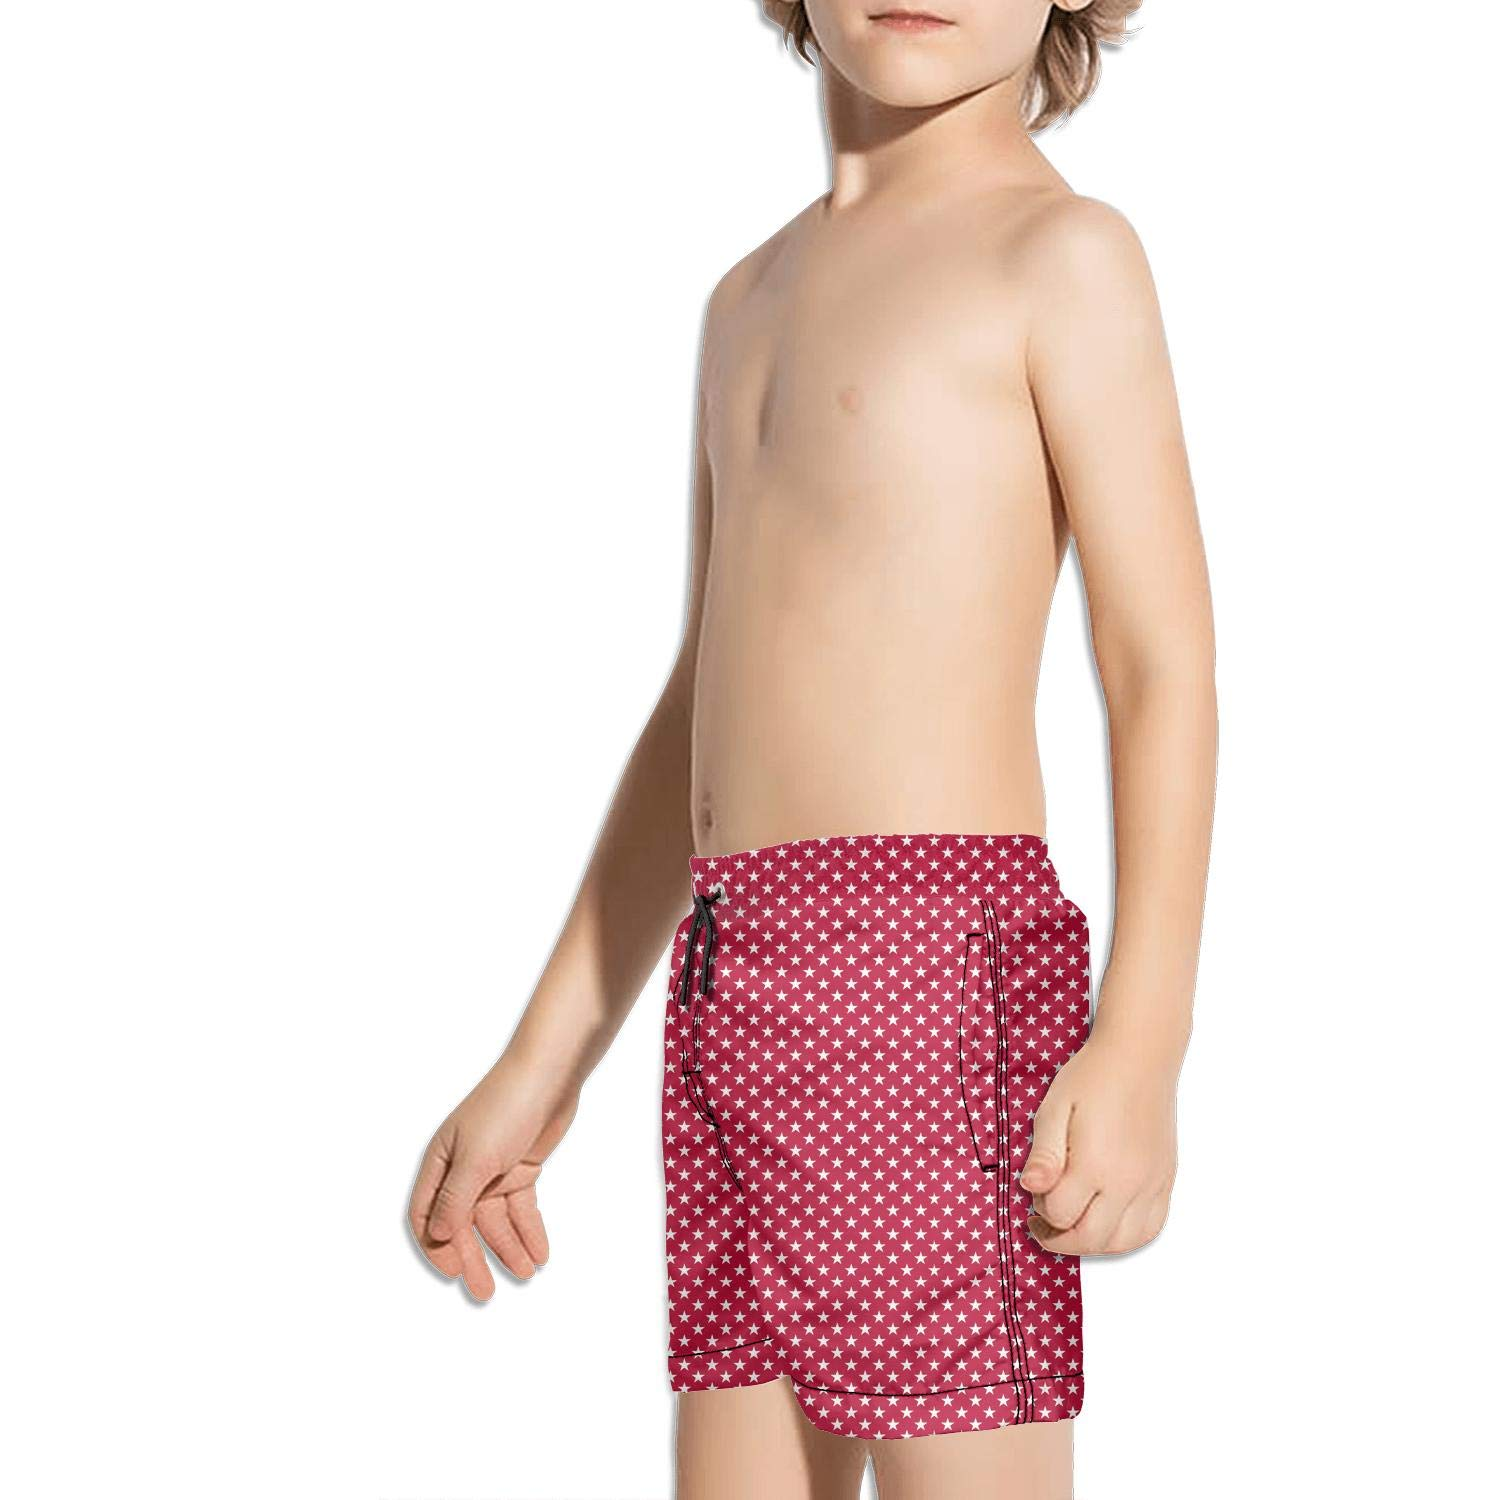 BingGuiC Boys Quick Dry Shorts Happy 4th of July American Flag independent5 Fashion Swim Trunks